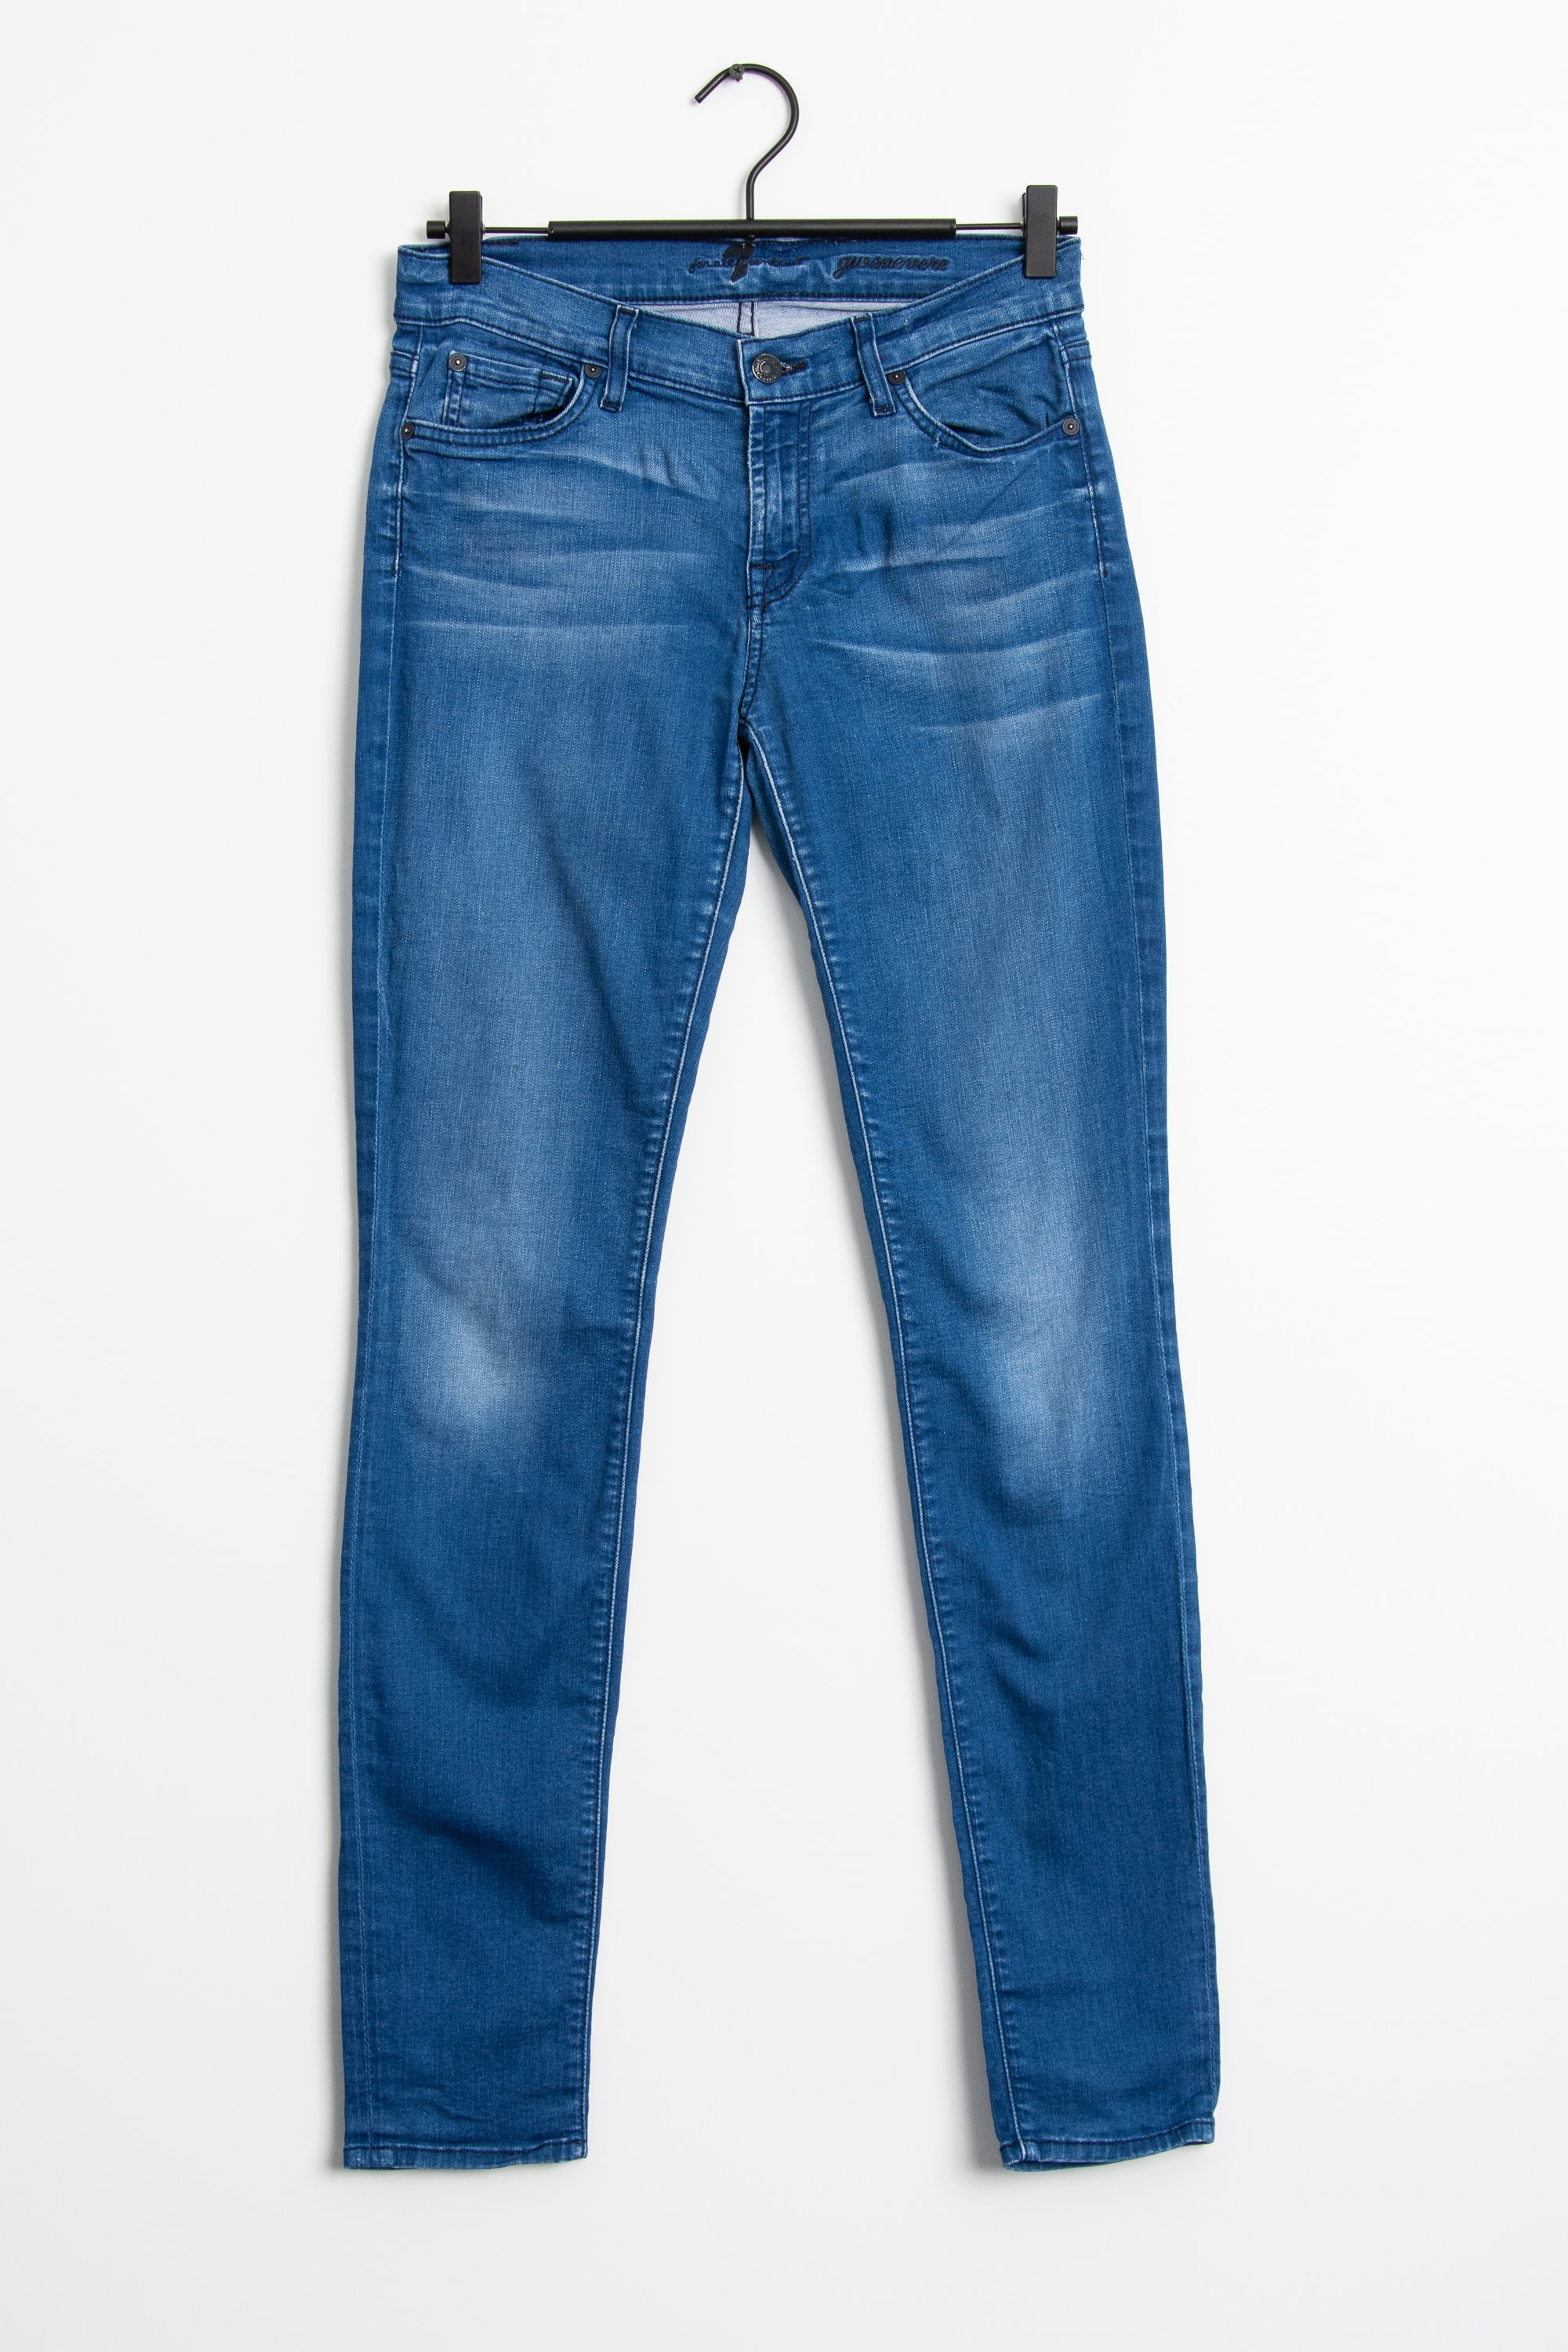 7 for all mankind Jeans Blau Gr.36